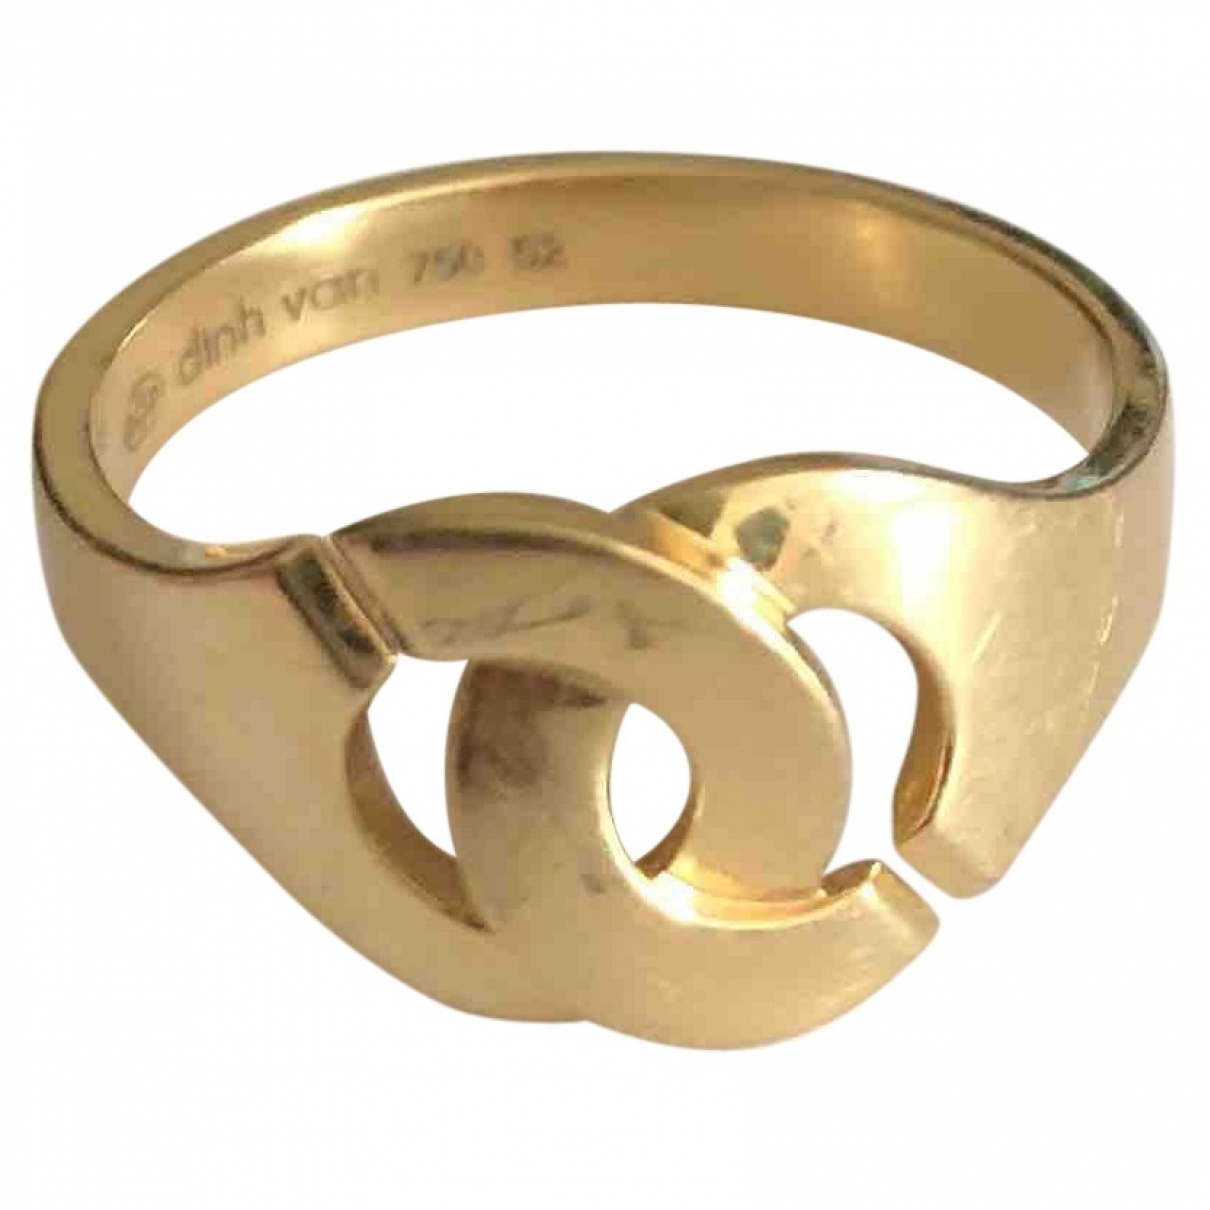 Dinh Van Menottes  Ring in  Gold Gelbgold